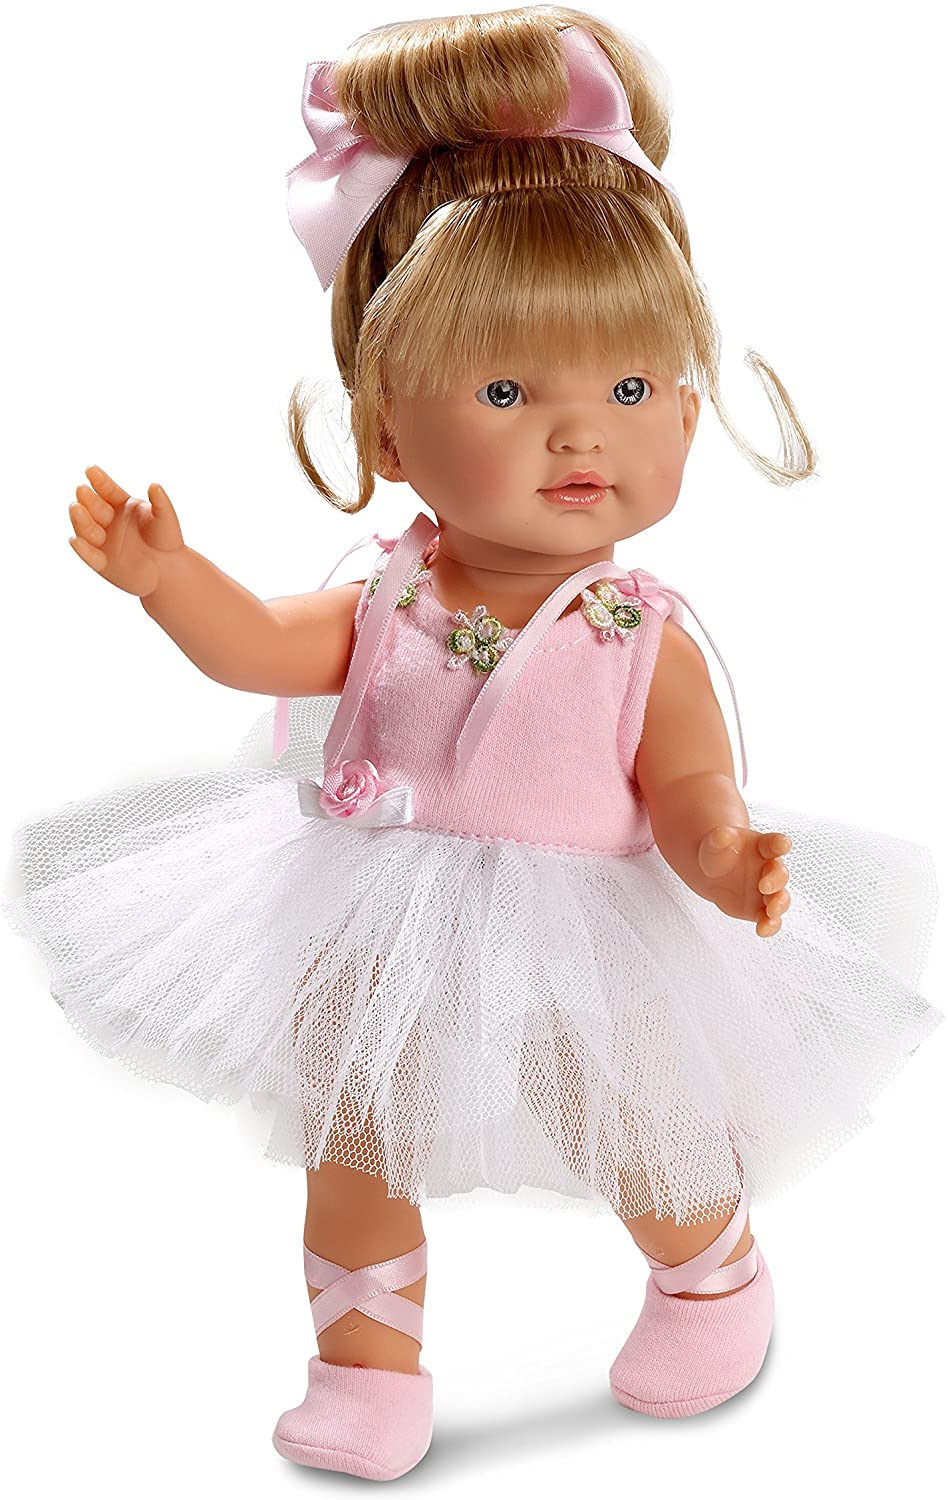 Valeria 11' Ballet Fashion Doll